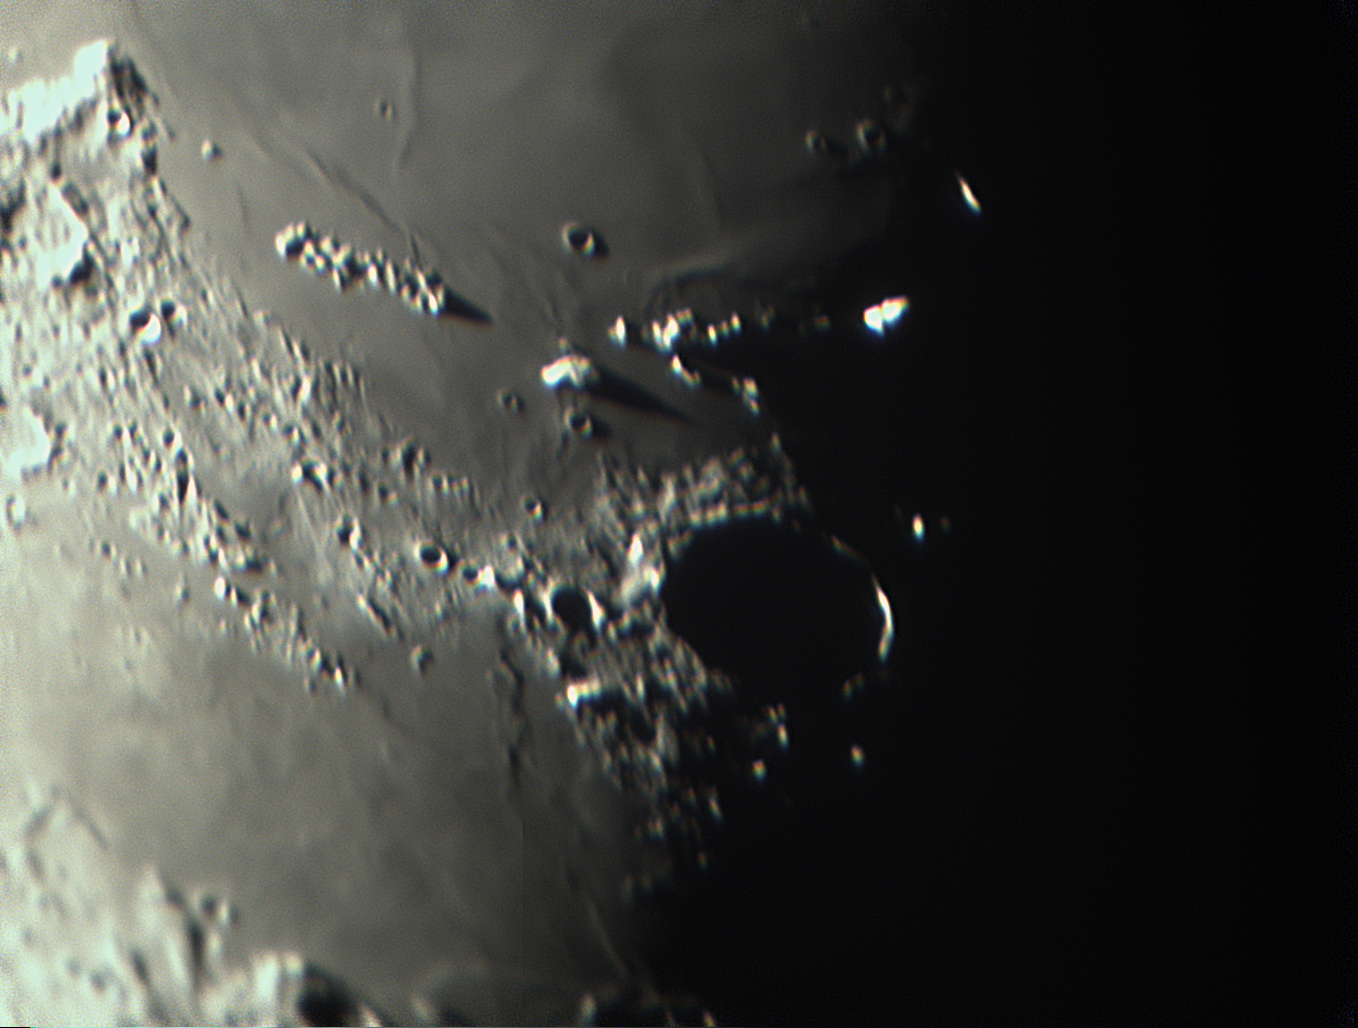 Lunar crater Plato falls into shadow as nightfall hits the waning moon. The quality is not the best—it was hard to get a good image along the terminator without high dynamic range. ZWO 224ASI camera.